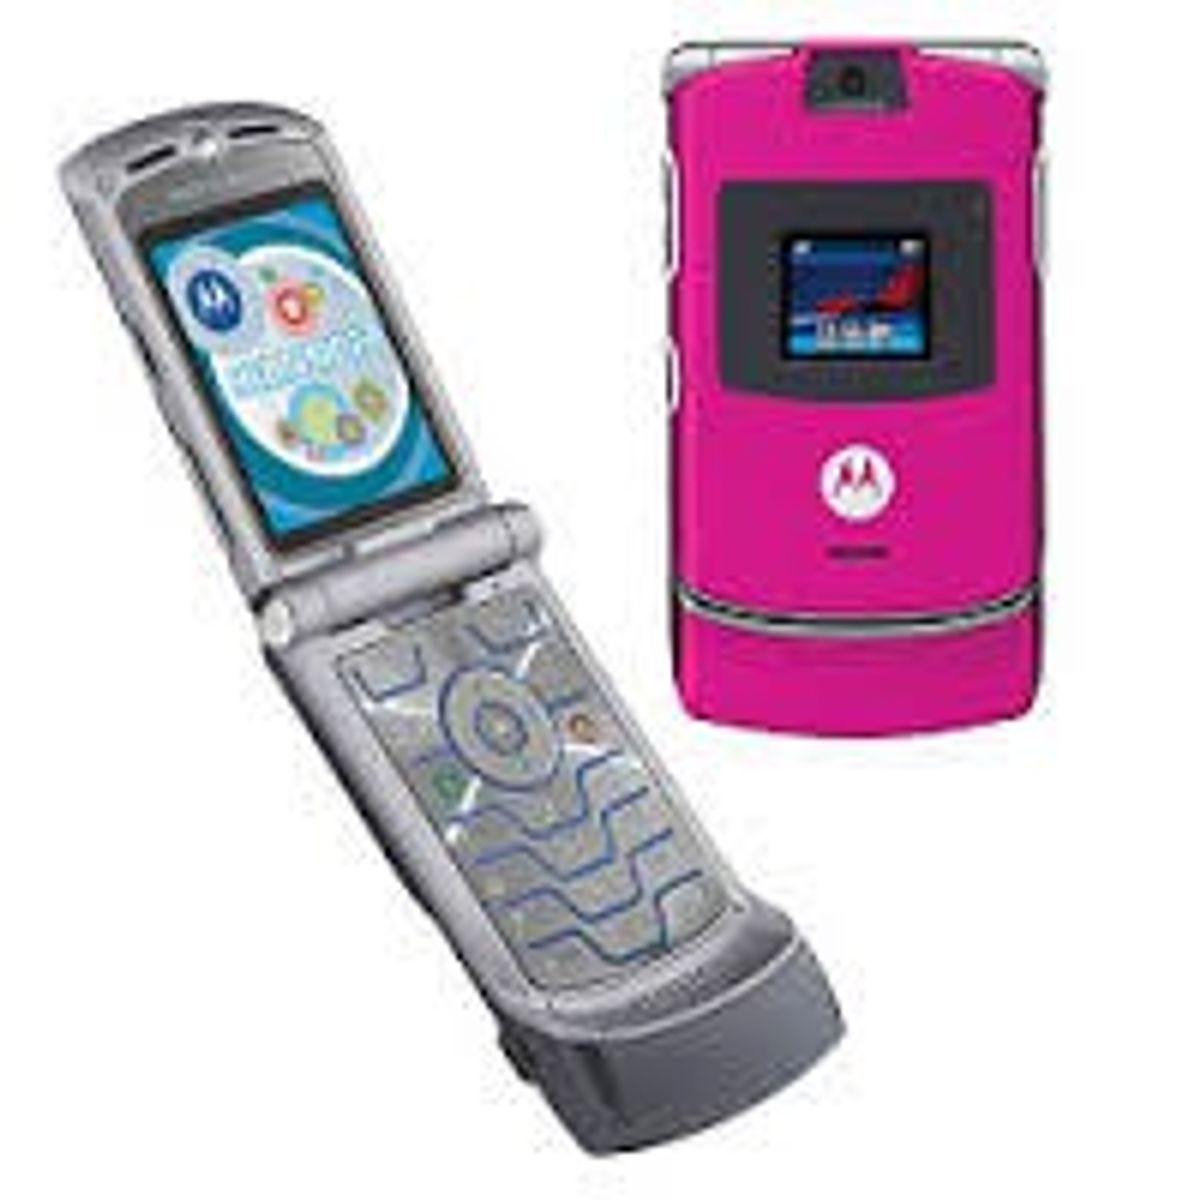 Whatever Happened to...The Flip Phone?